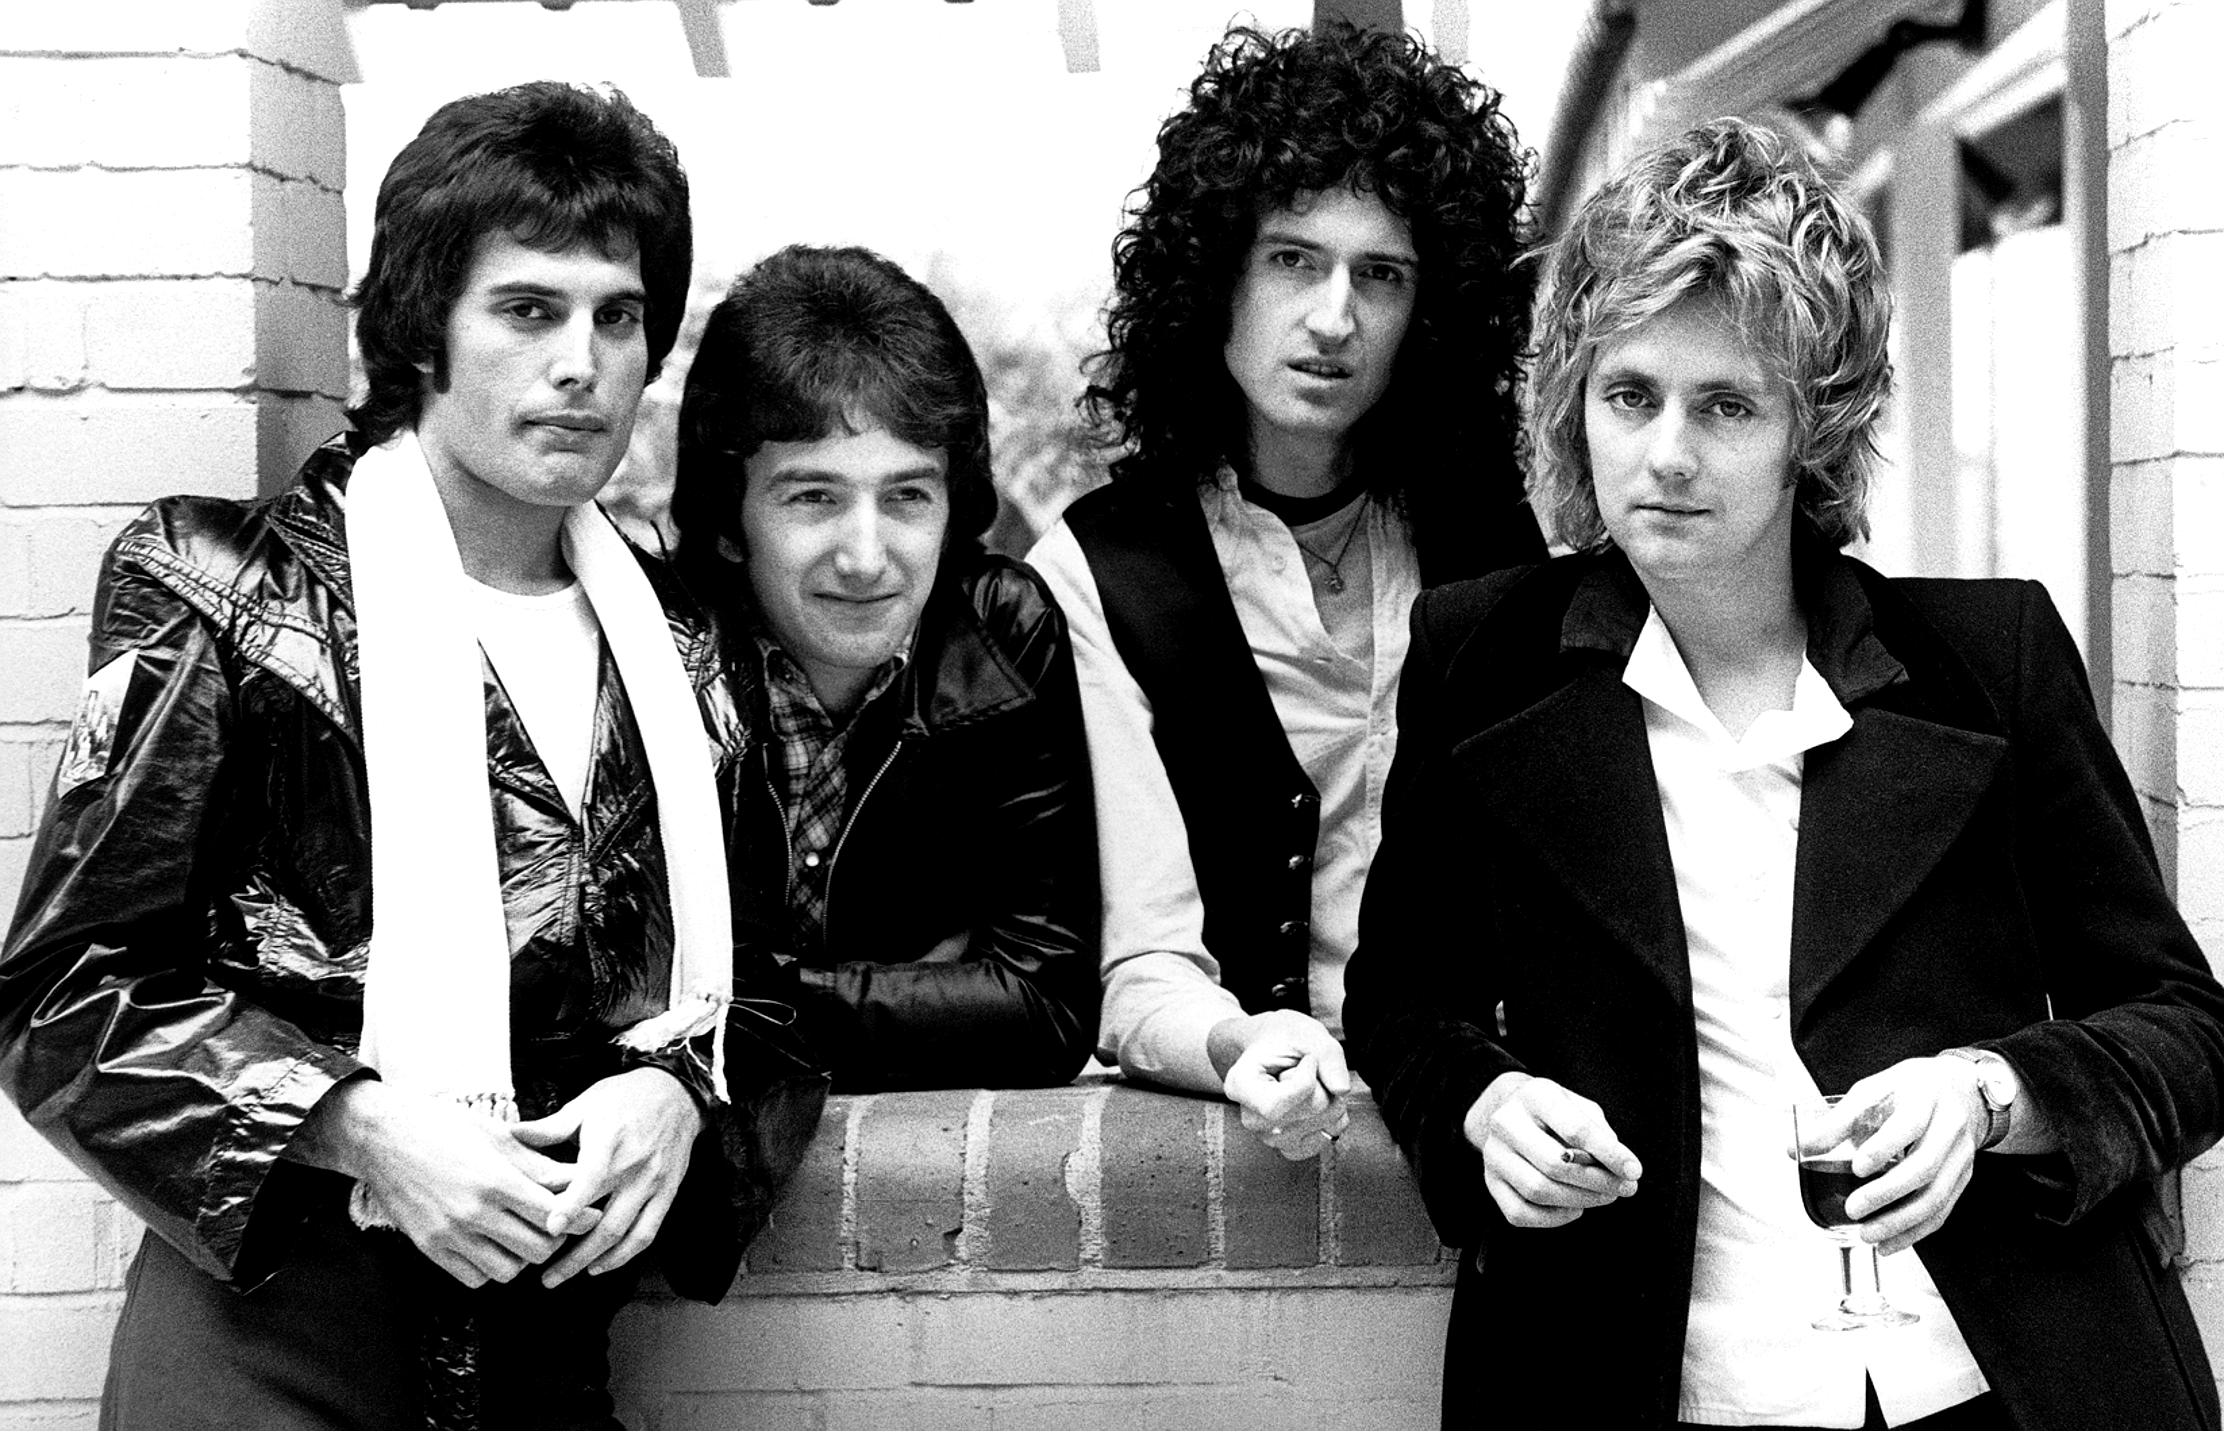 queen-photo-by-chris-hopper-in-1977.jpg